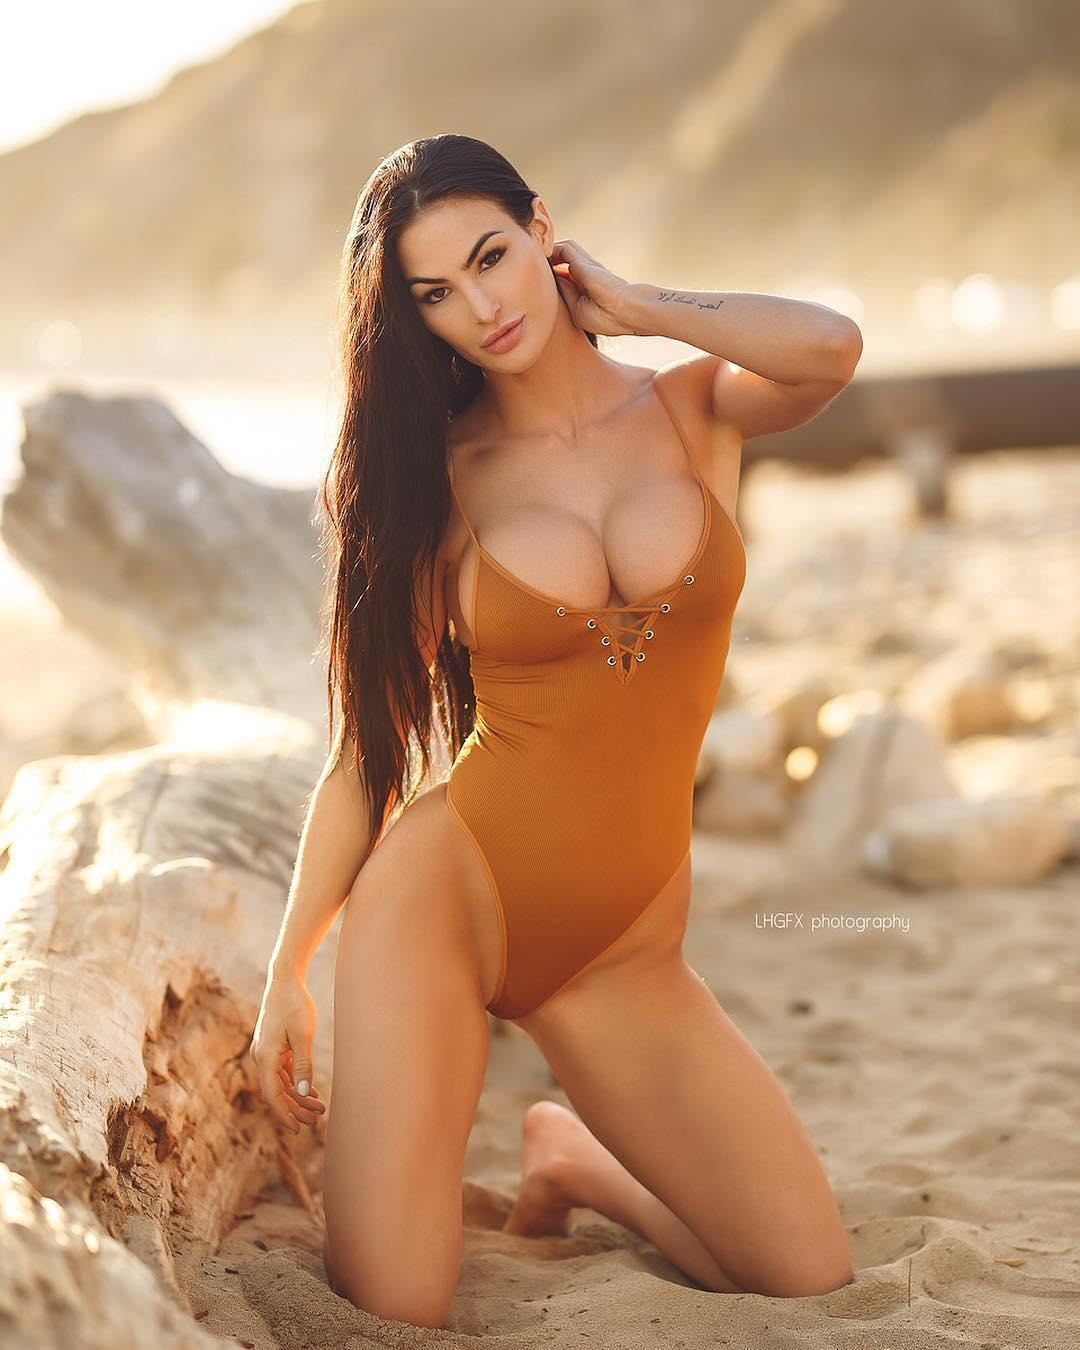 Katelyn Runck Wild Bikini Muscles Sport Picture and Photo